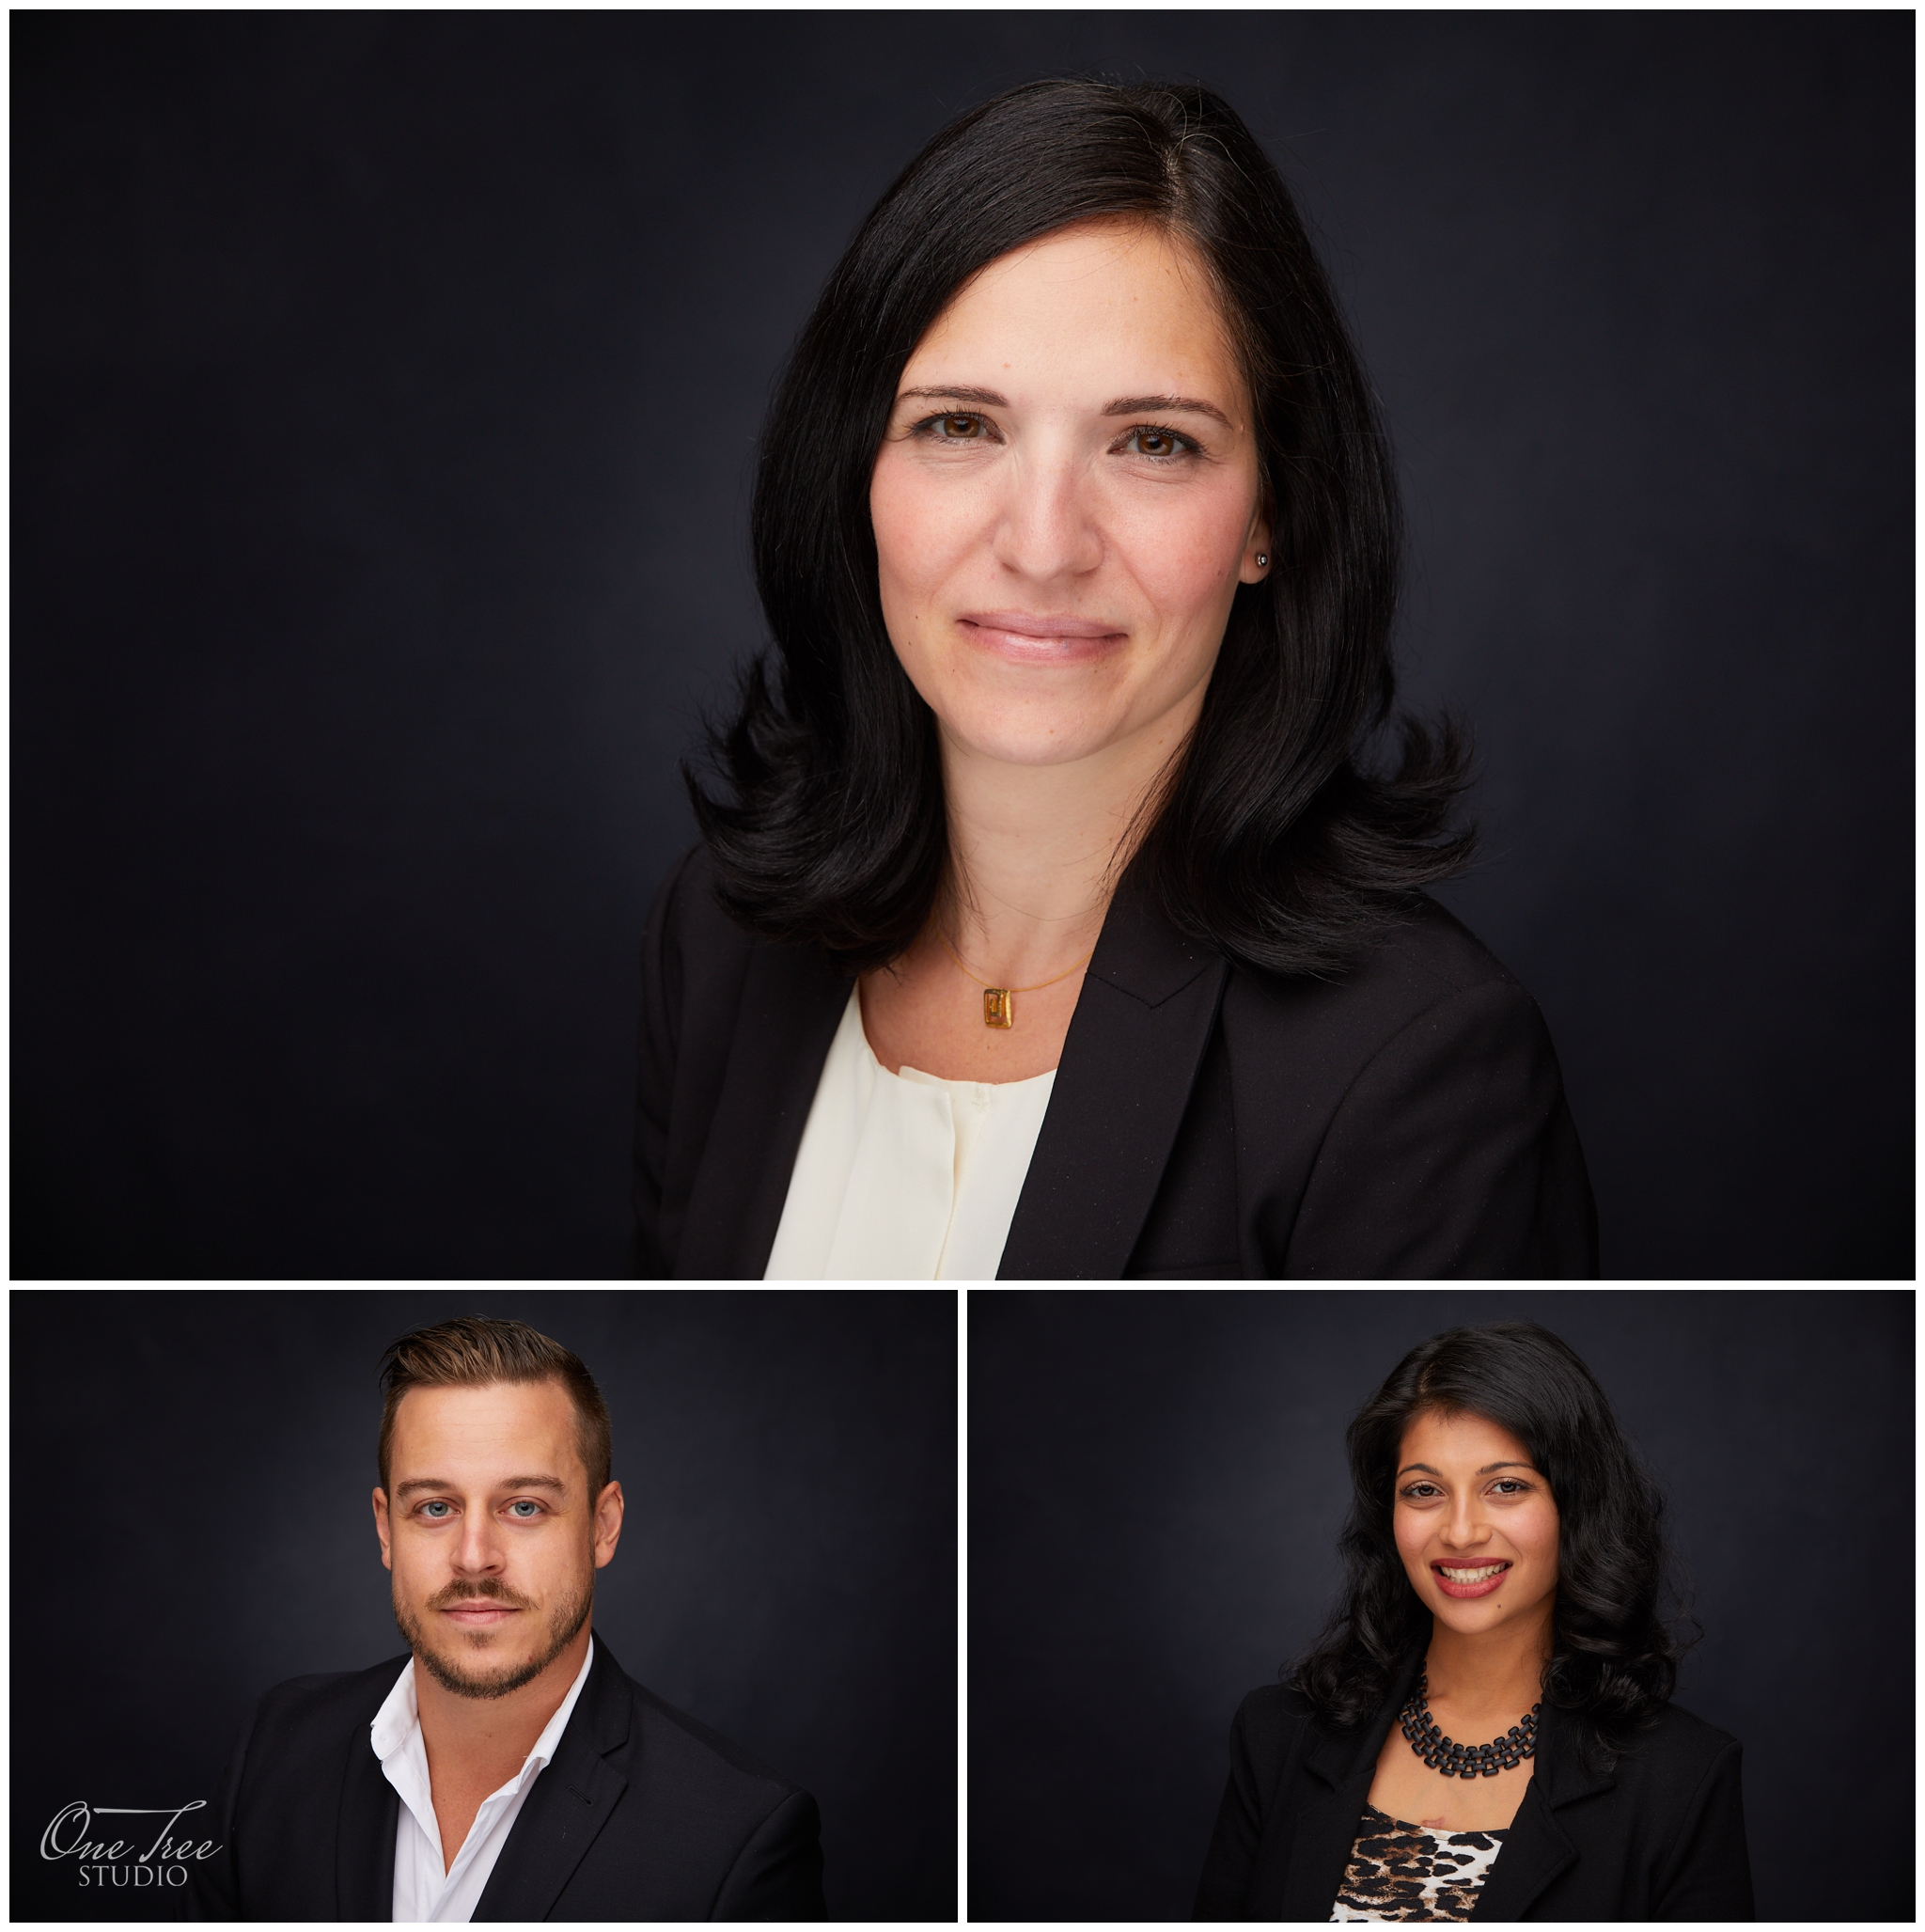 Accor Headshots4866_OTS.jpg